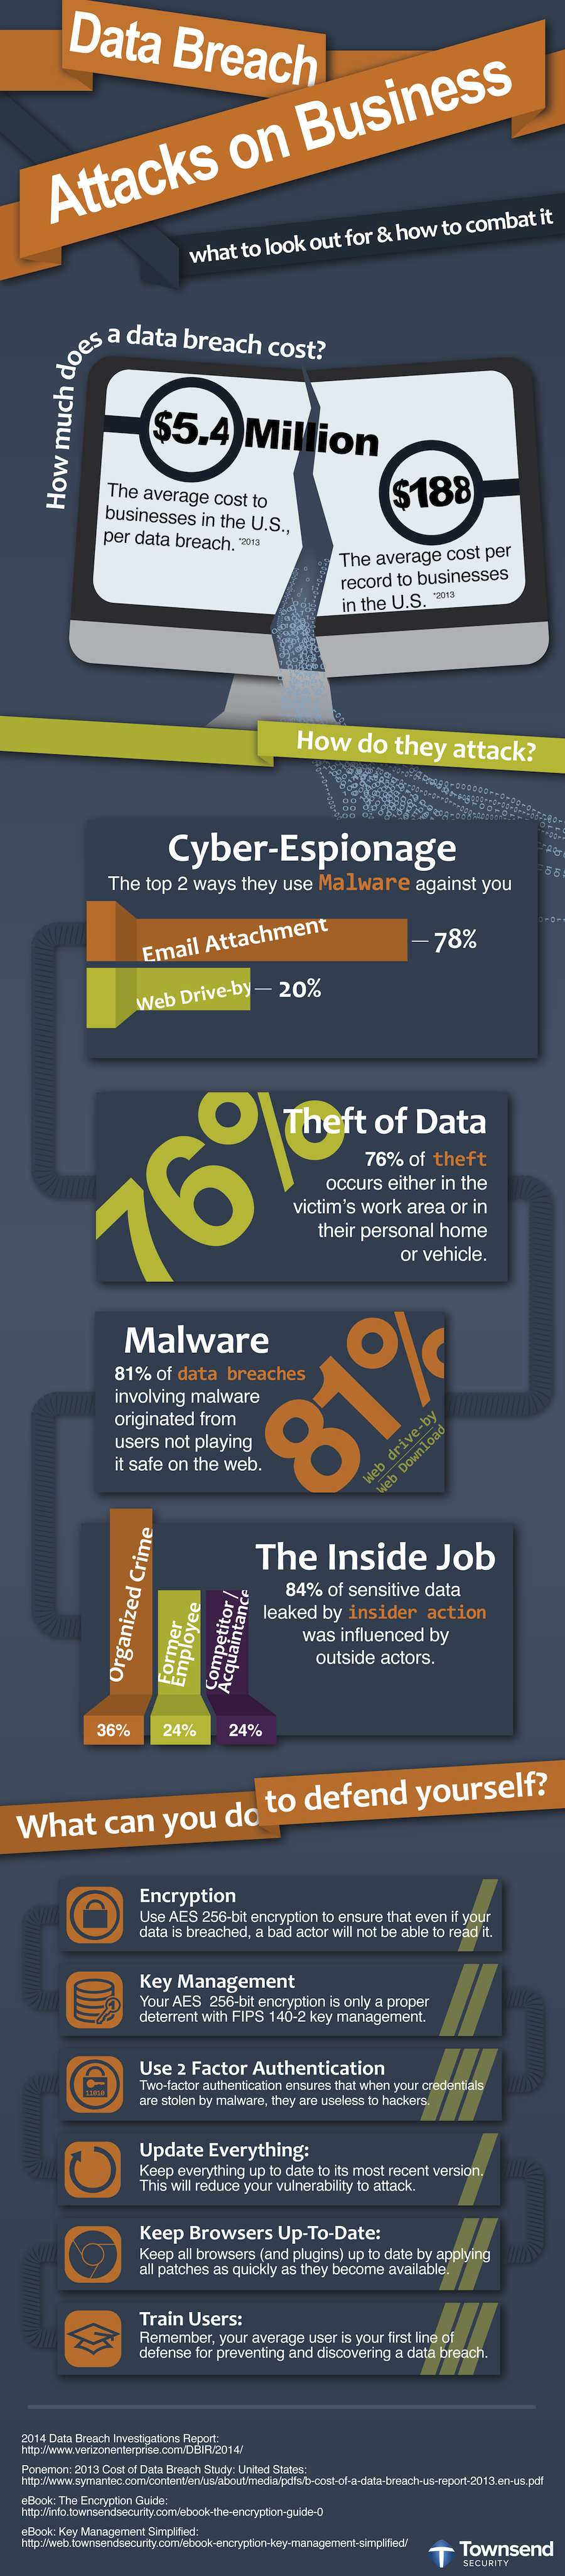 Data Breach Infographic